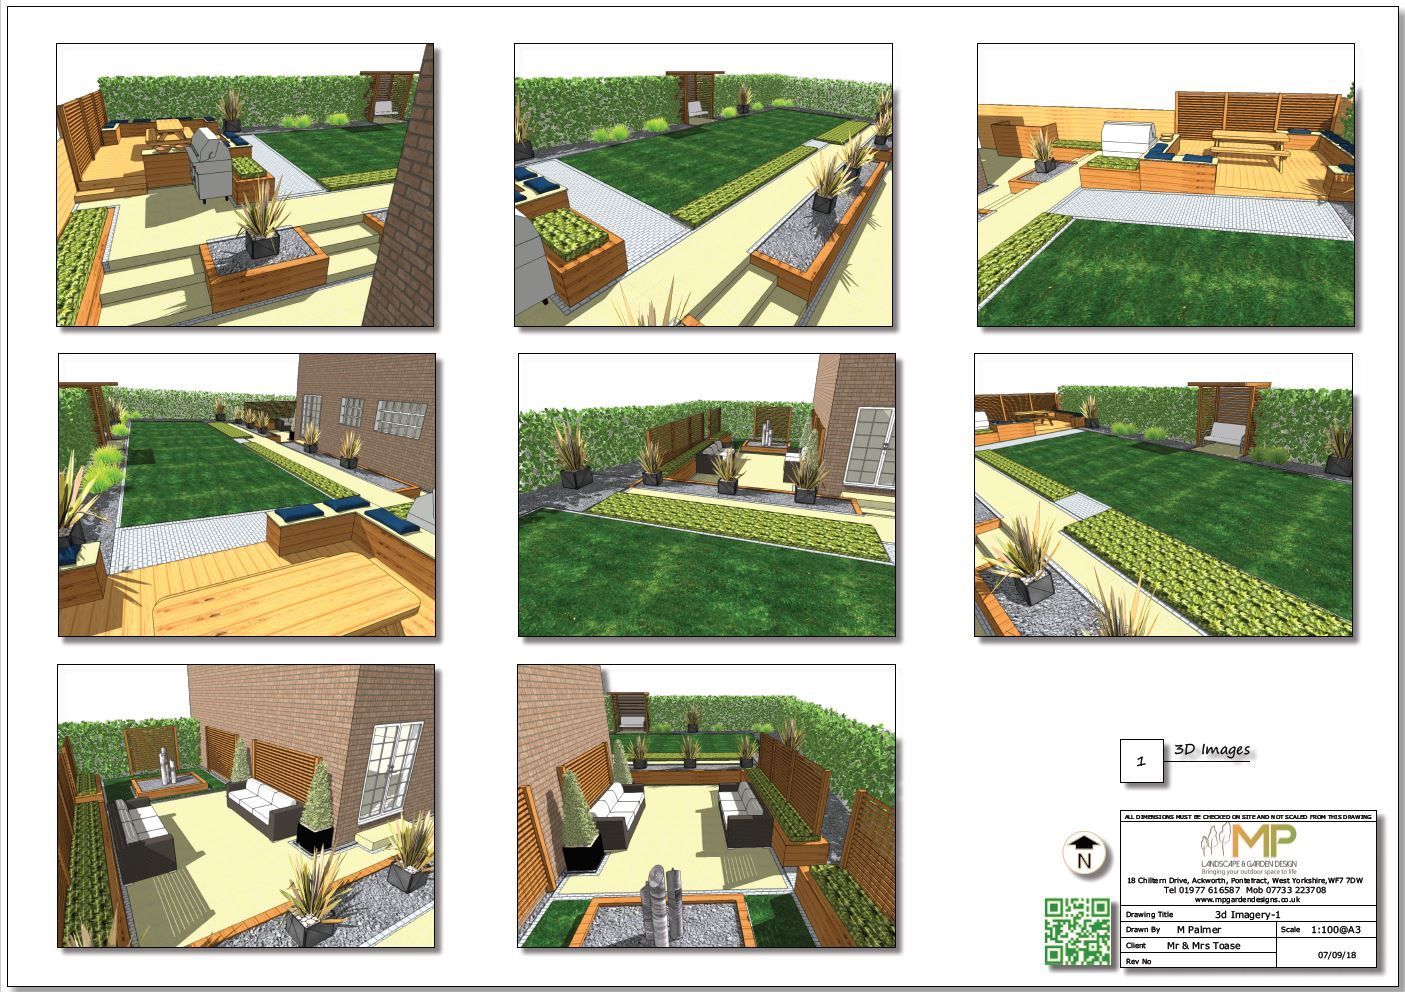 Concept plan-1 3D images for a property in Wakefield.